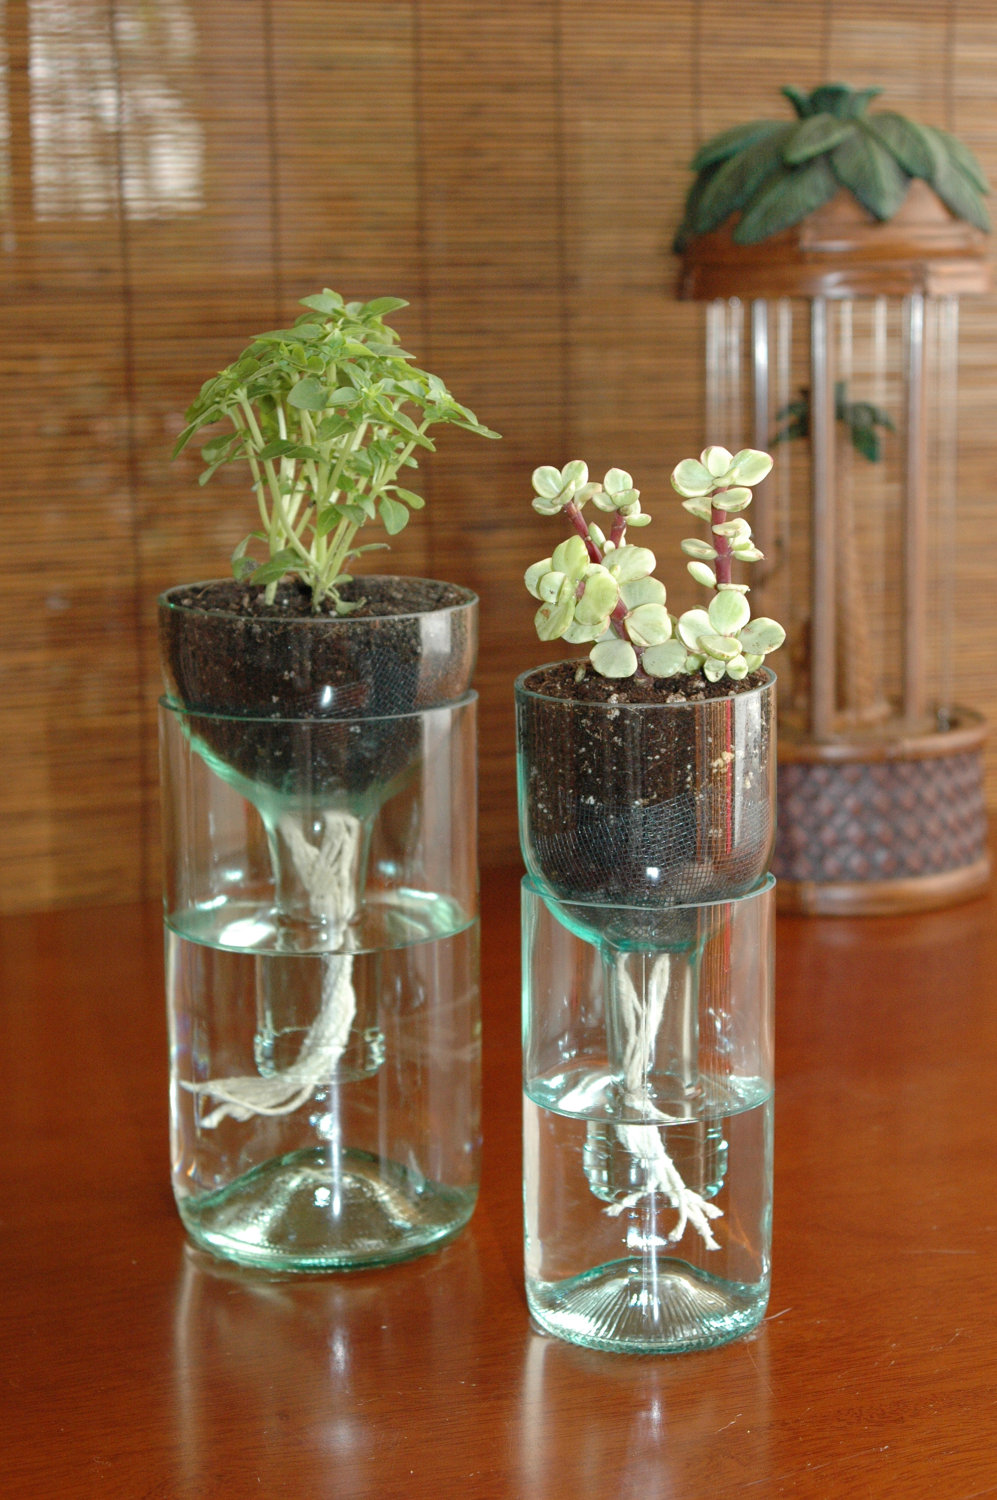 Self-watering planter made from recycled bottles…clever clever.